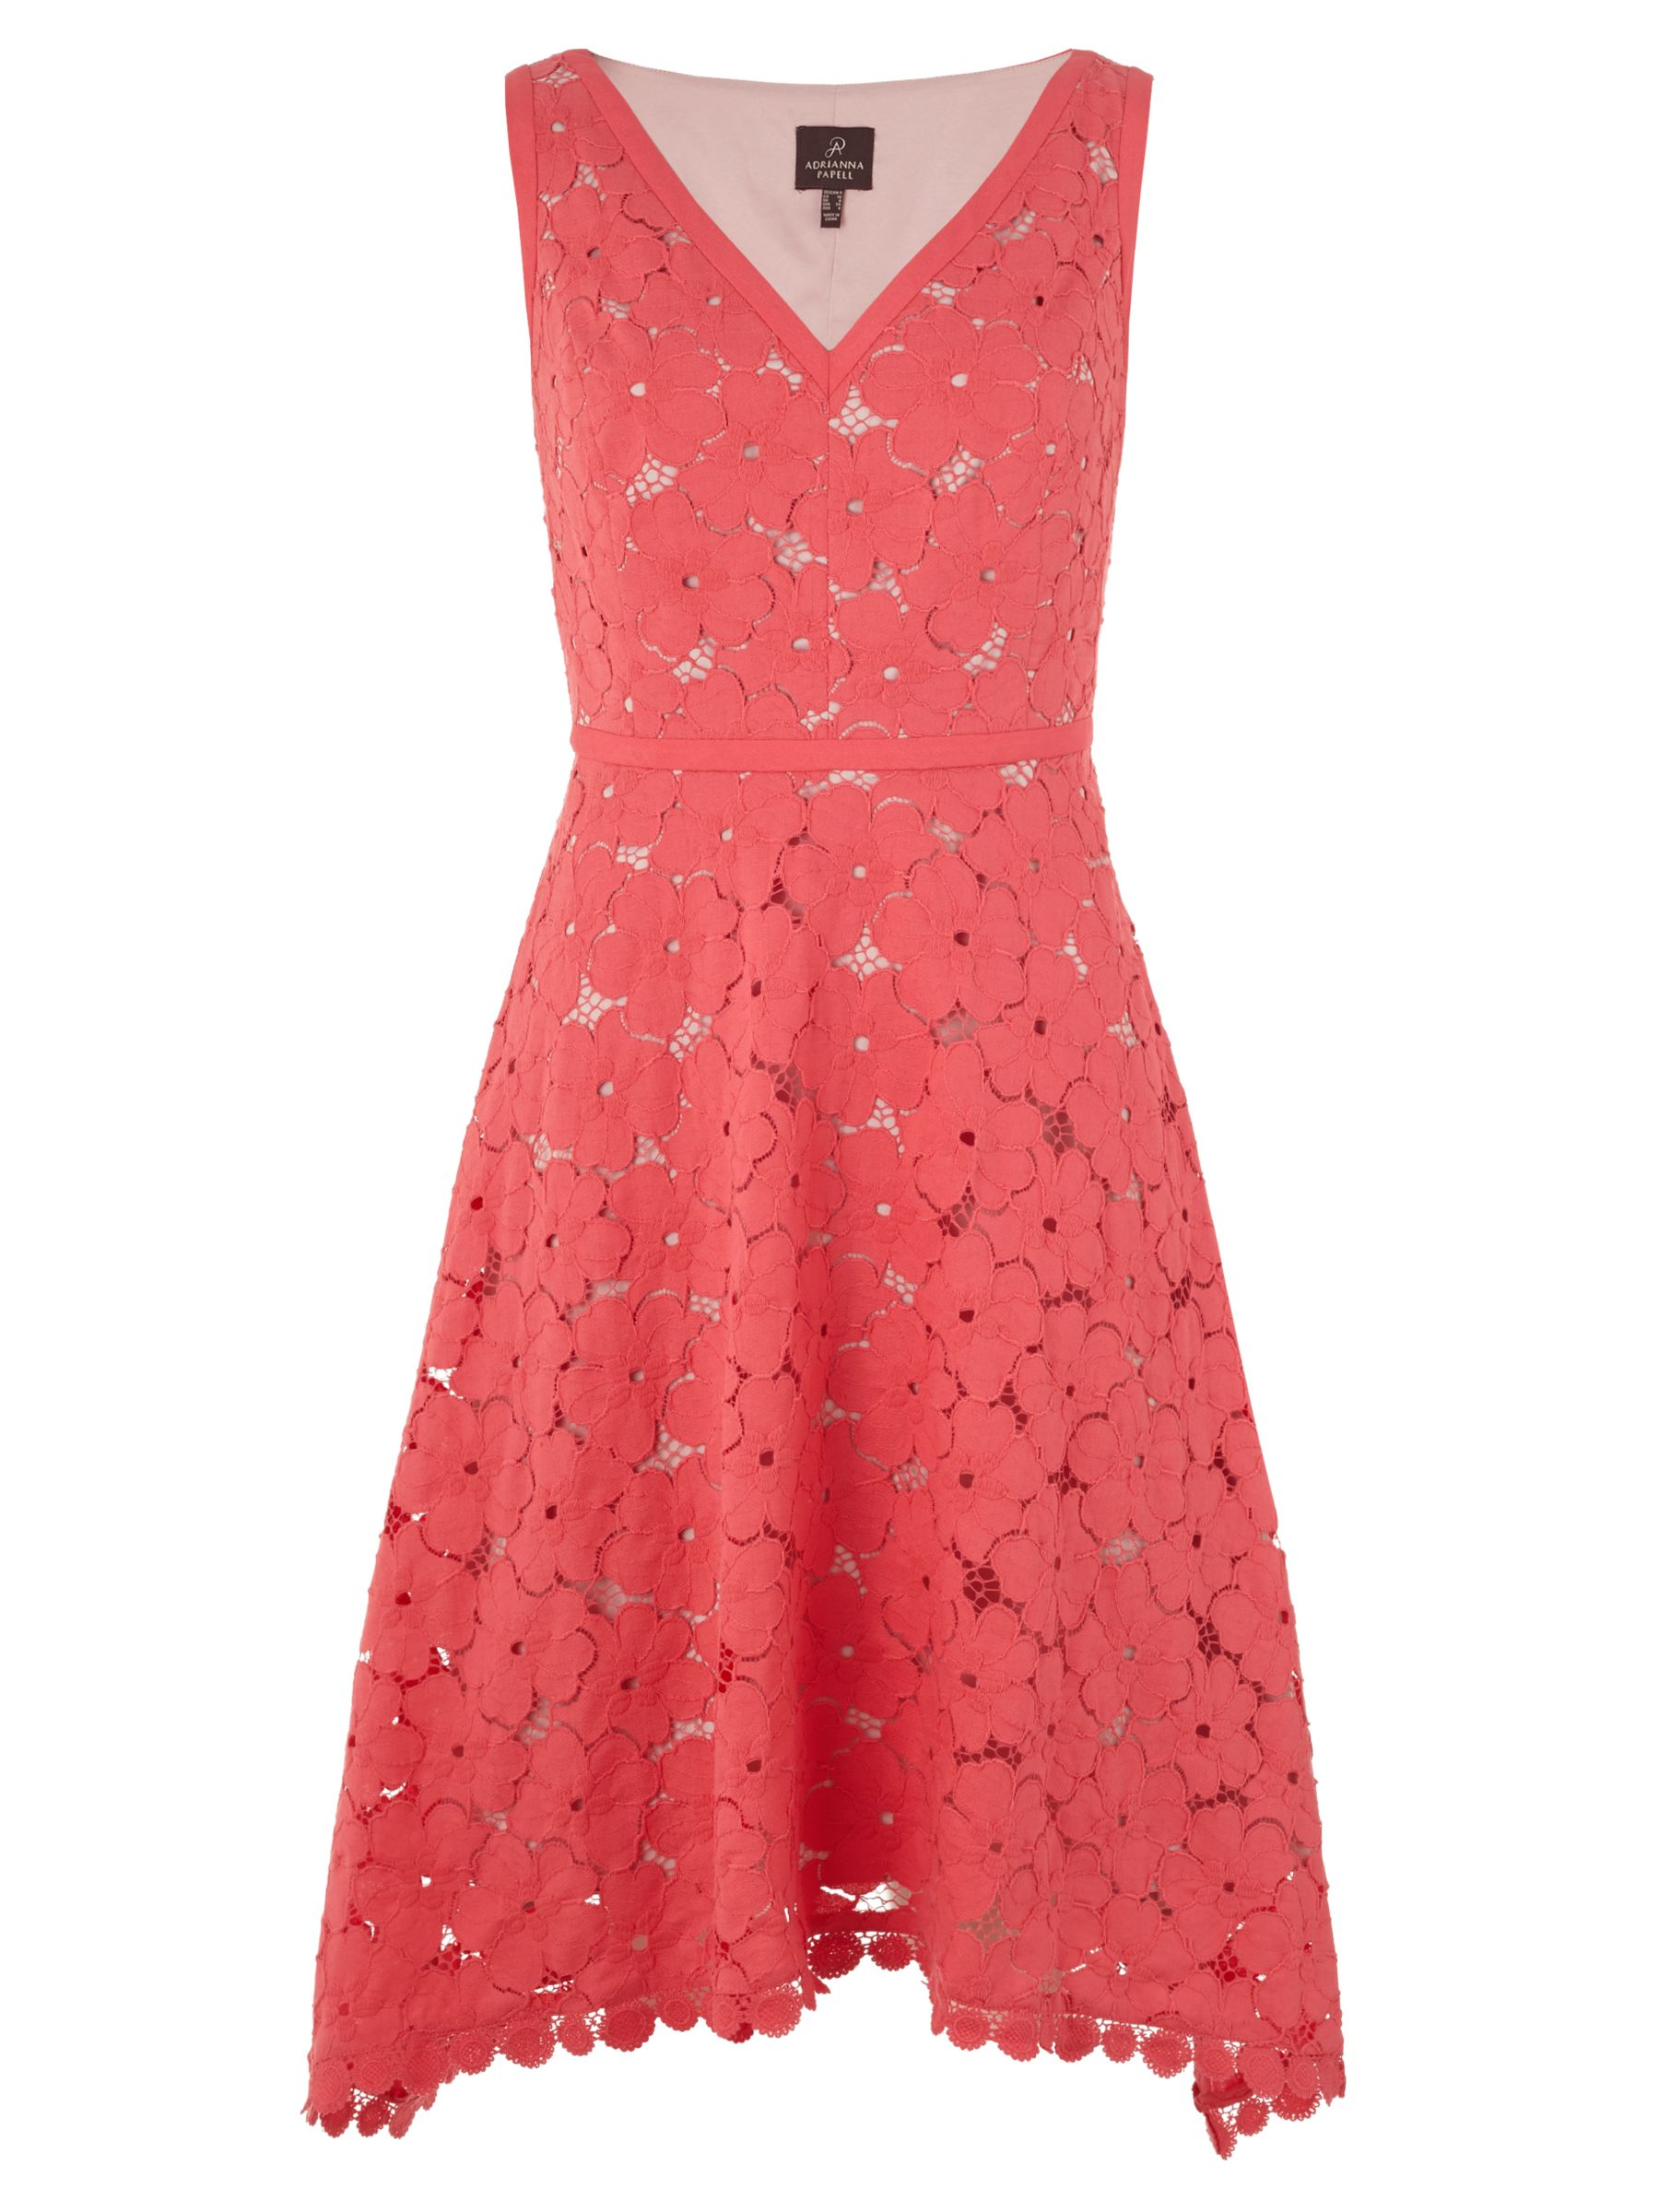 adrianna papell v-neck fit and flare lace dress coral, adrianna, papell, v-neck, fit, flare, lace, dress, coral, adrianna papell, 18|8|12|10|16|14, women, brands a-k, womens dresses, gifts, wedding, wedding clothing, female guests, 1921642